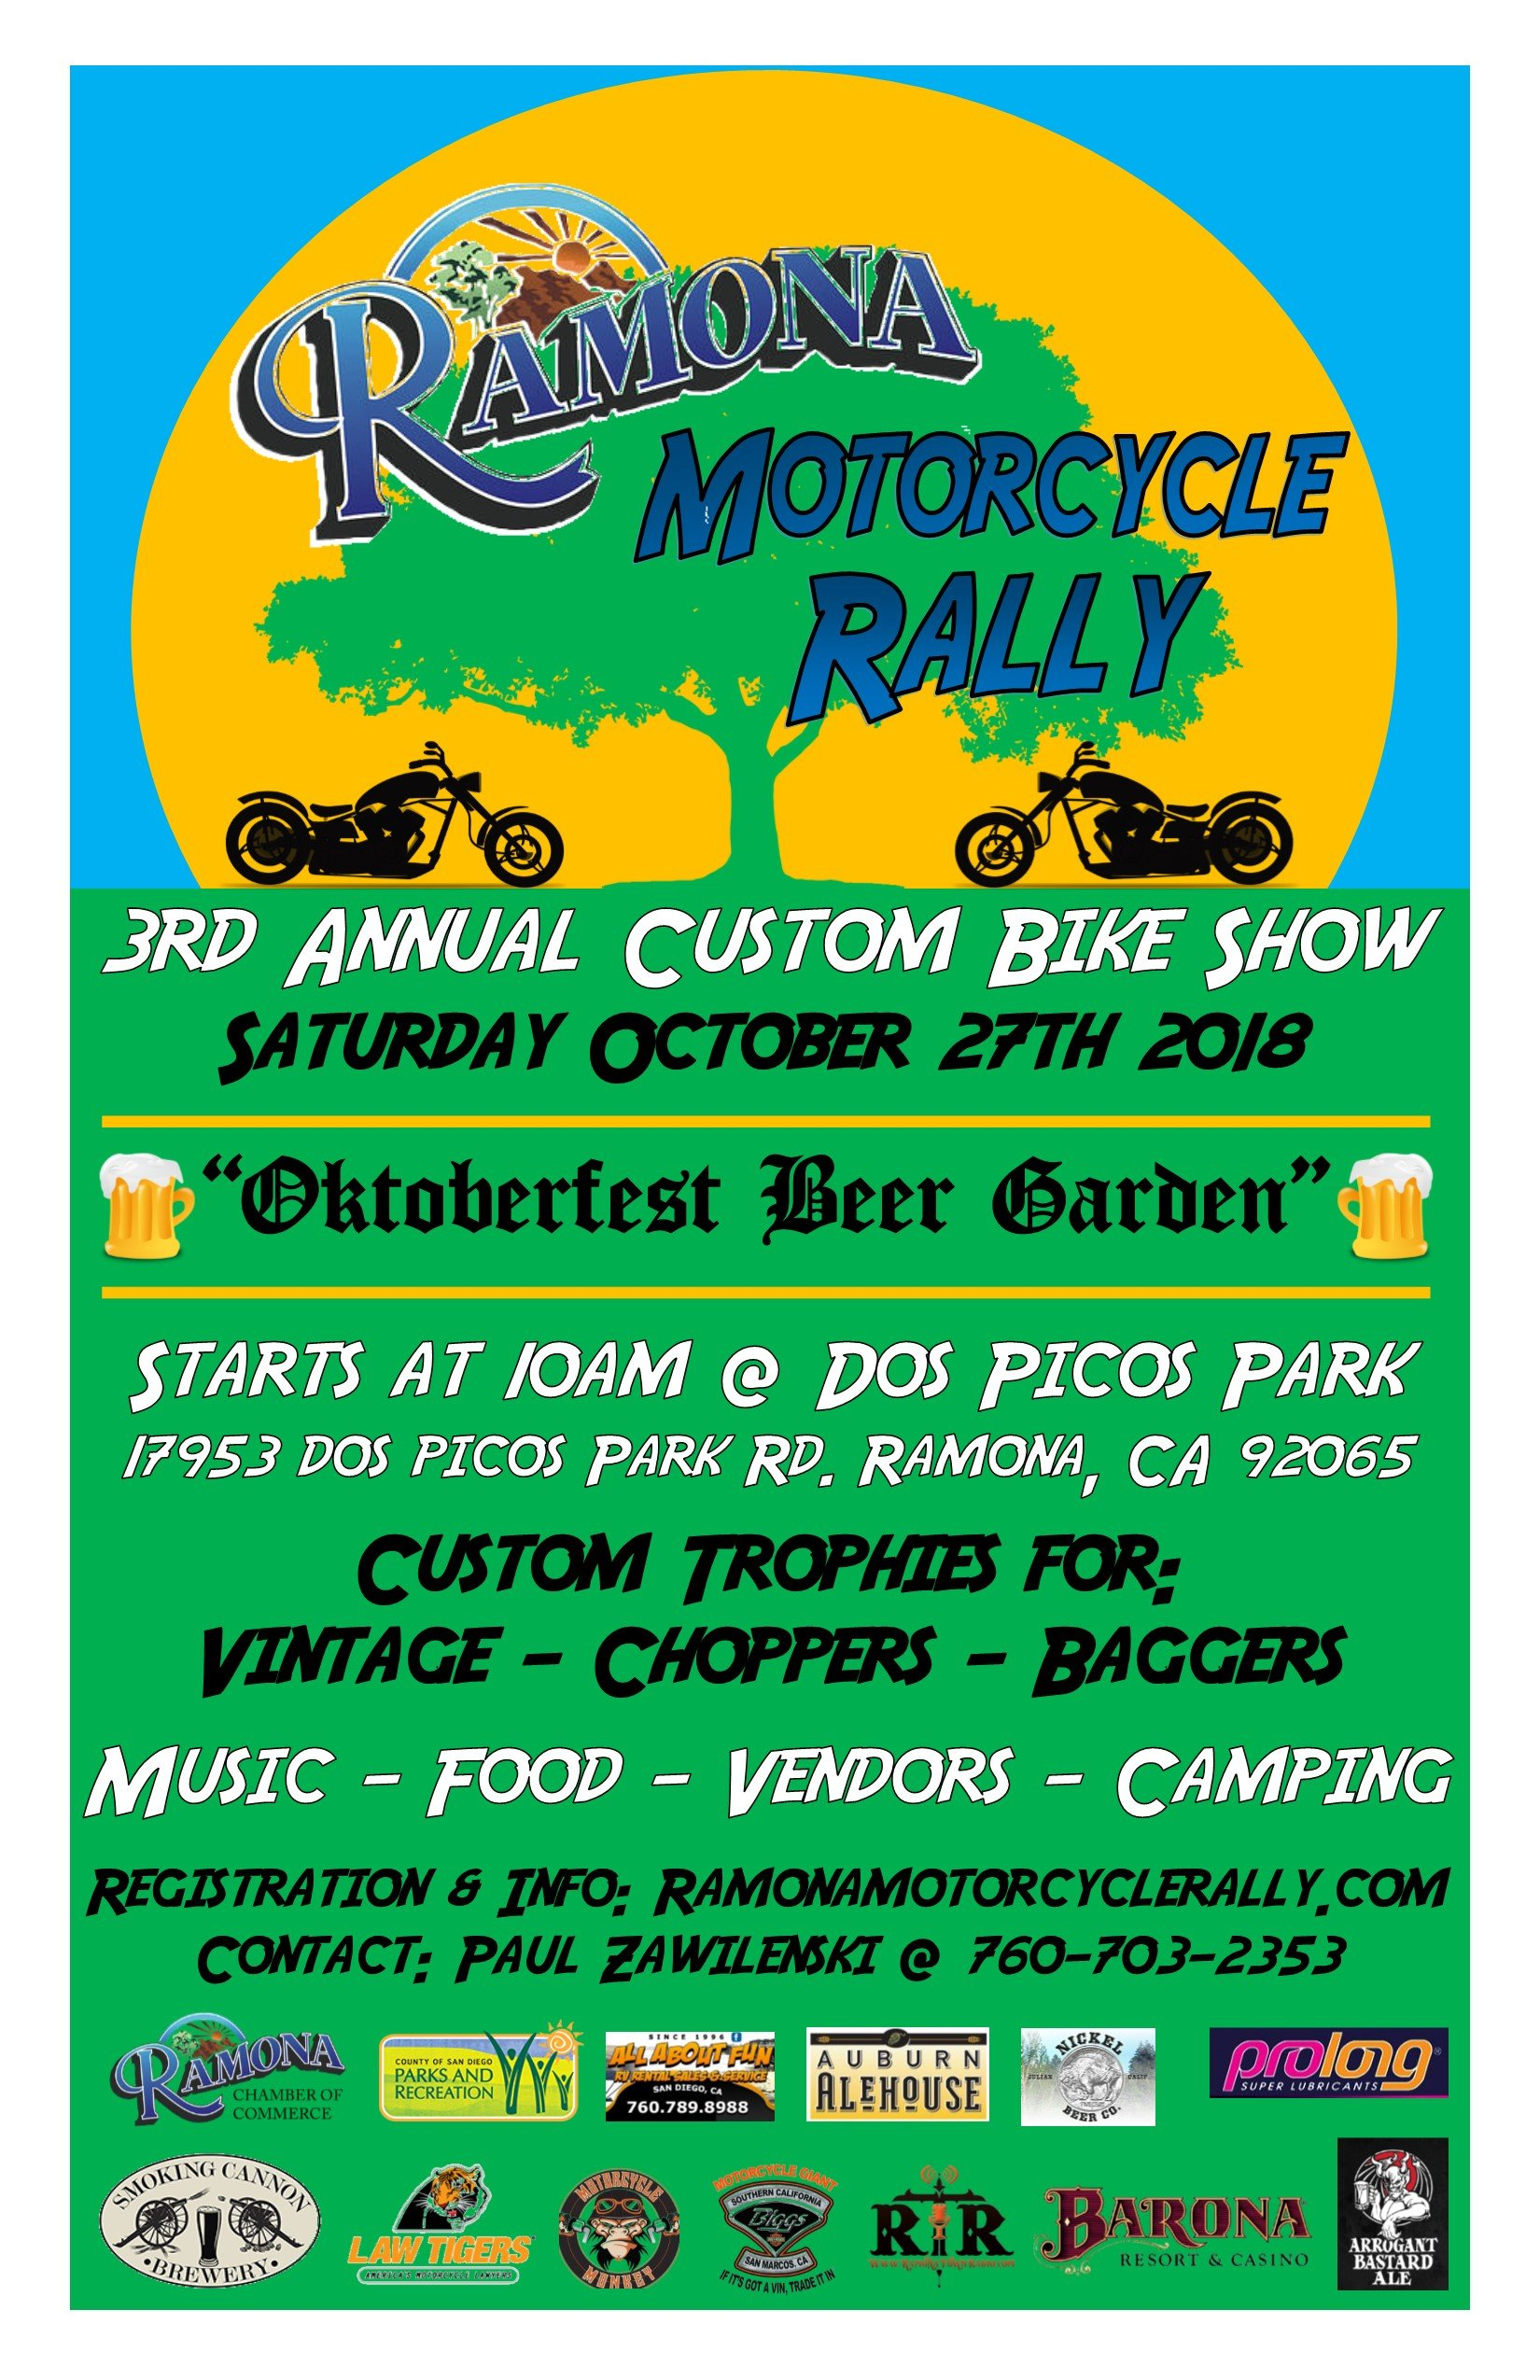 Ramona Motorcycle Rally & Custom Bike SHow